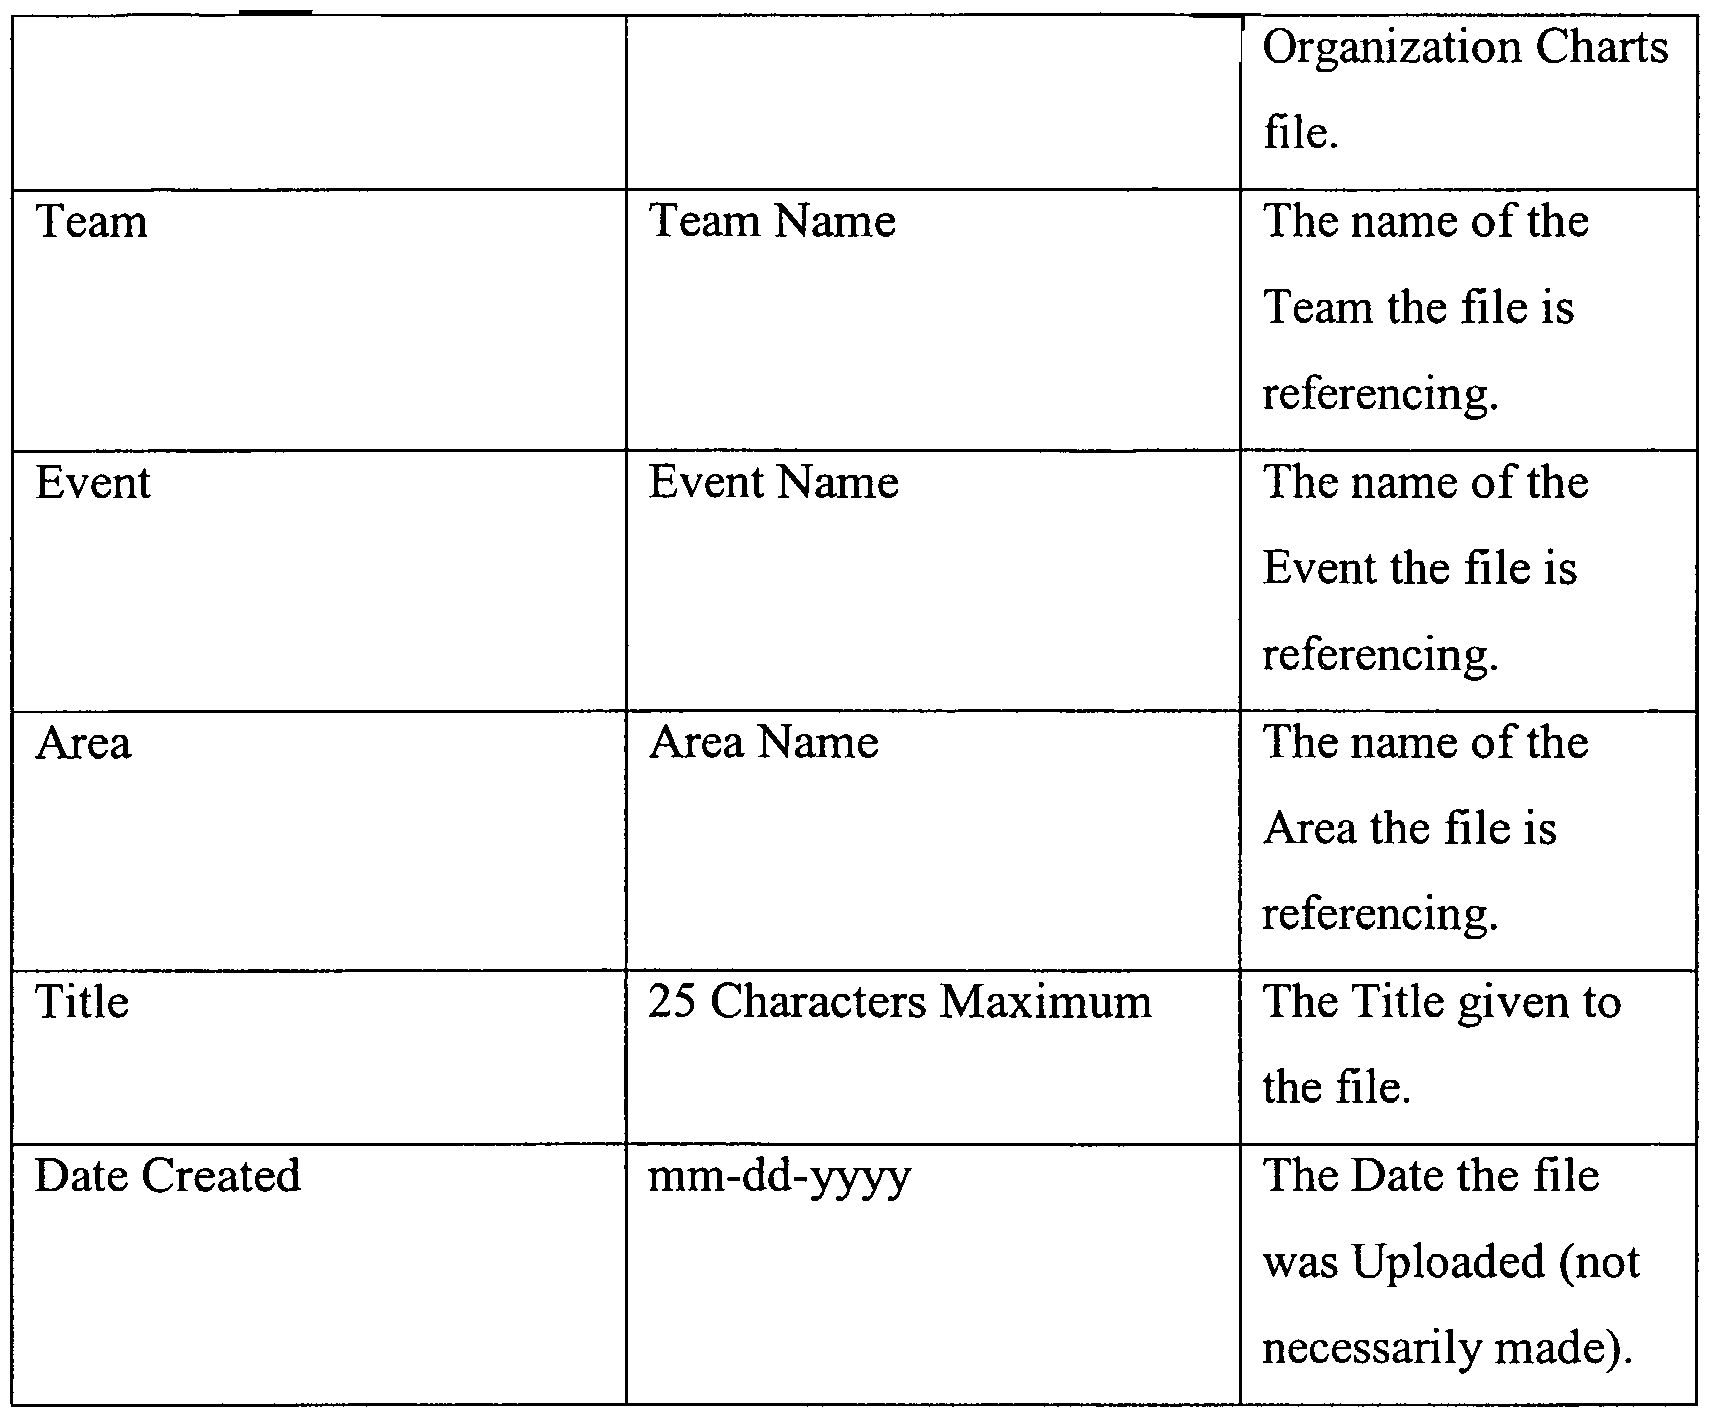 Google docs organization chart template rainfilecloud for Org chart template google docs